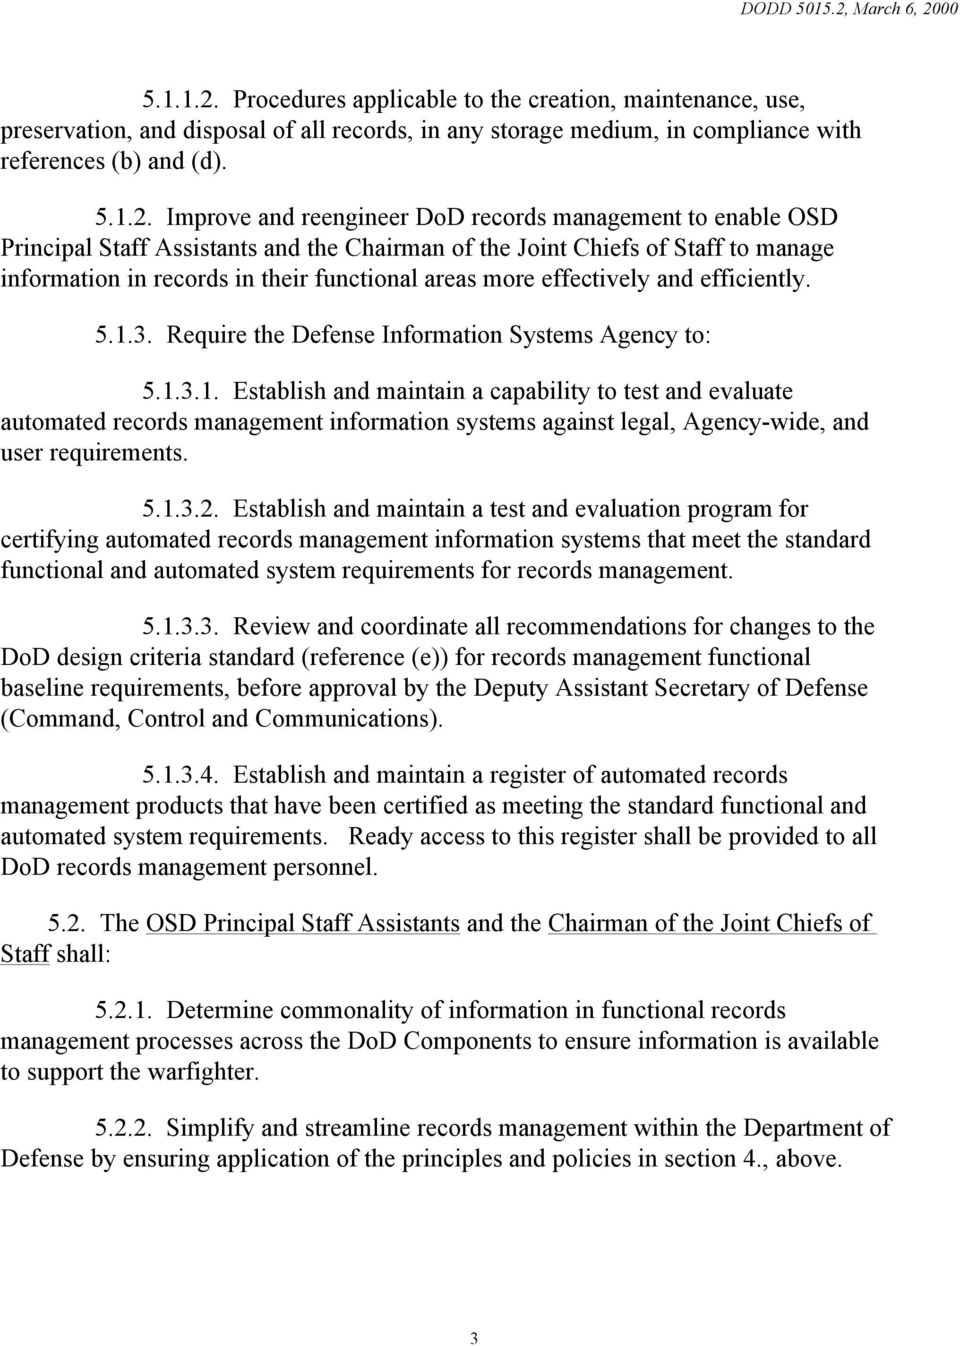 Improve and reengineer DoD records management to enable OSD Principal Staff Assistants and the Chairman of the Joint Chiefs of Staff to manage information in records in their functional areas more